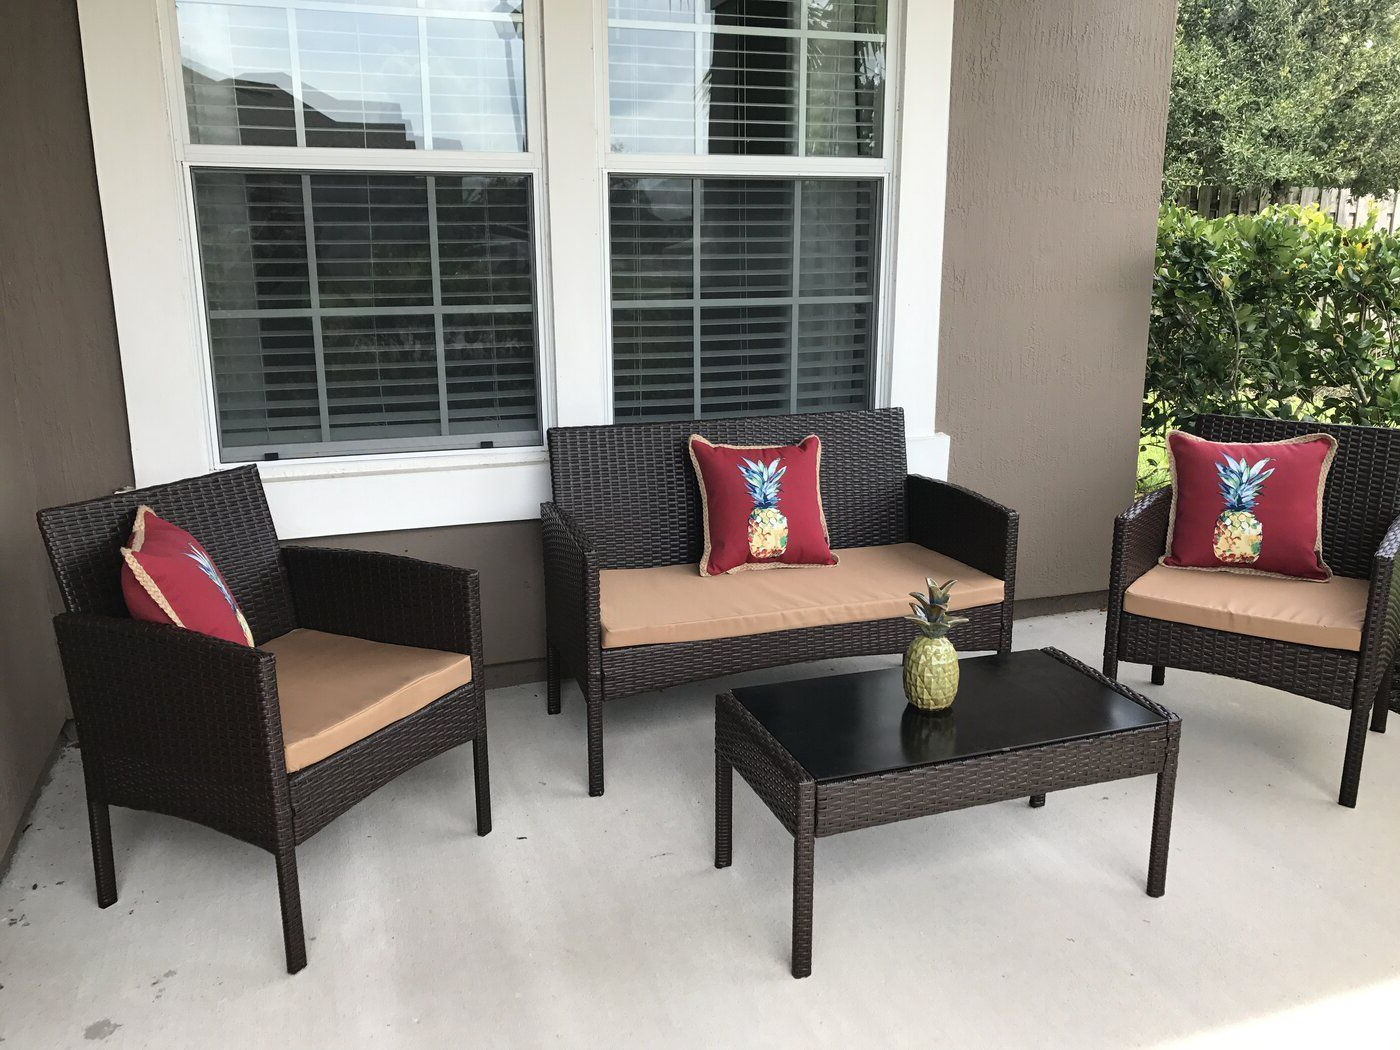 Tessio 4 Piece Rattan Sofa Seating Group With Cushions (View 21 of 25)